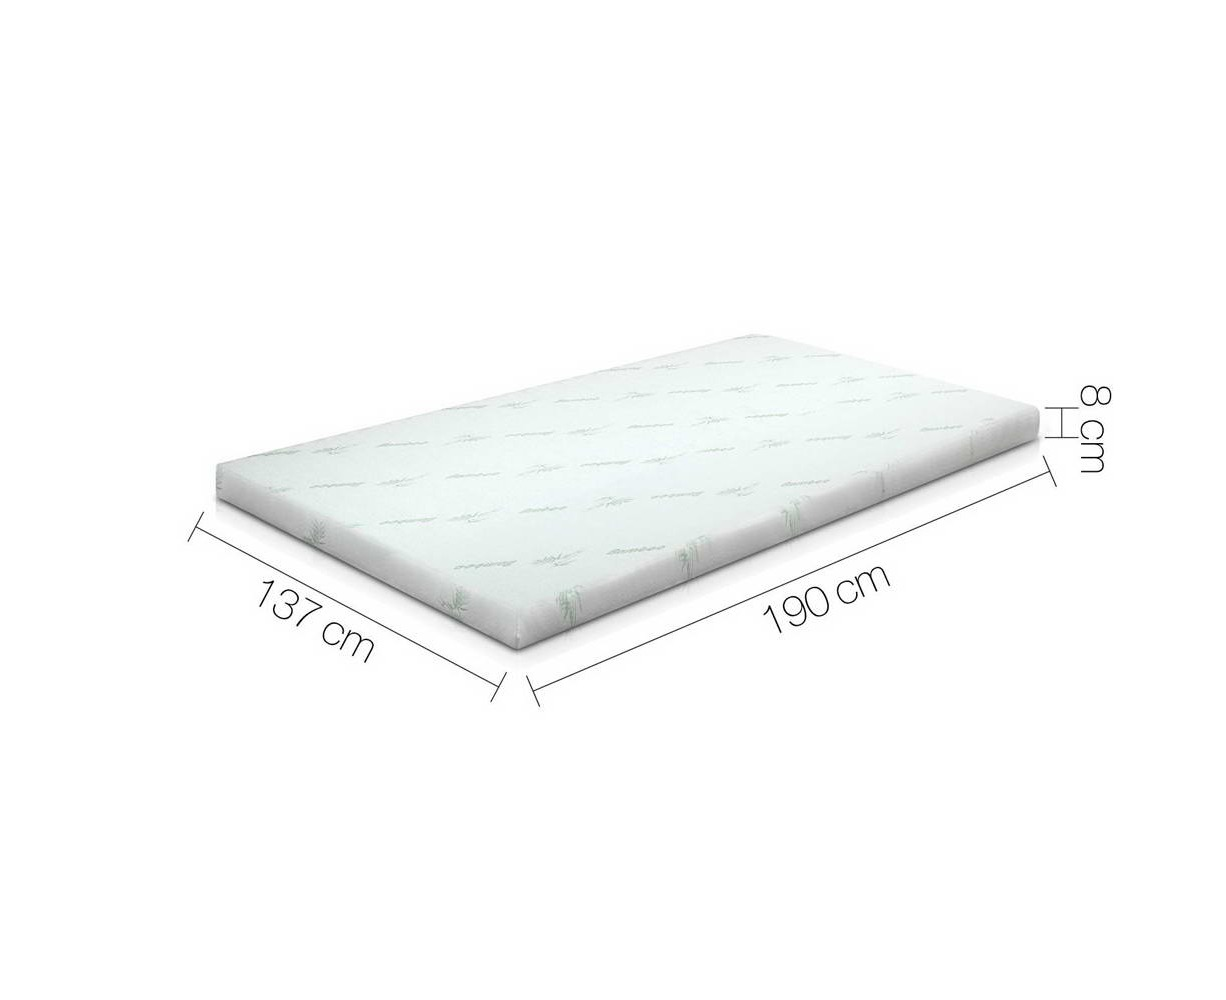 giselle bedding cool gel memory foam mattress topper bamboo 5 zone